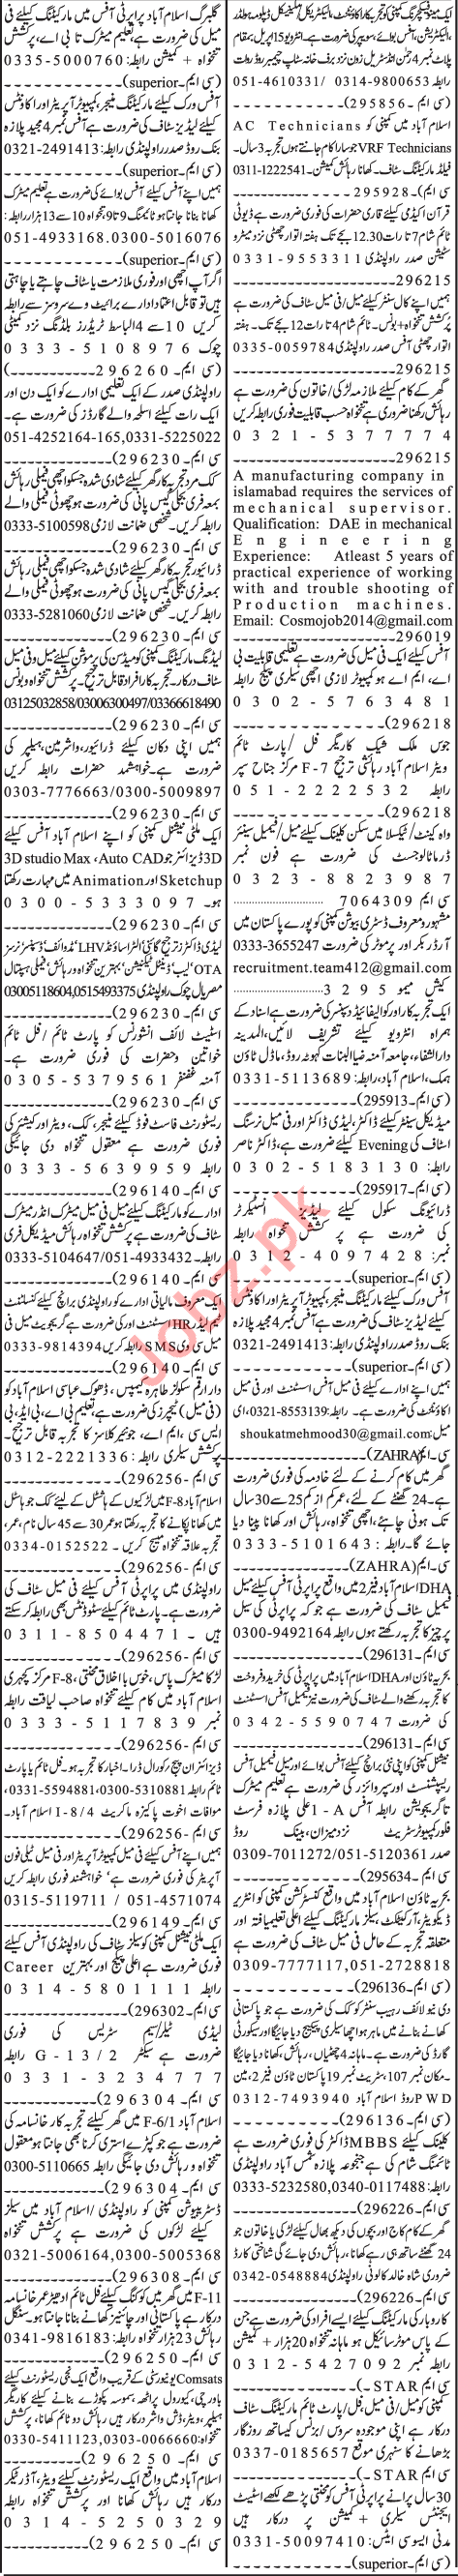 Jang Sunday Classified Ads 14th April 2019 Multiple Staff